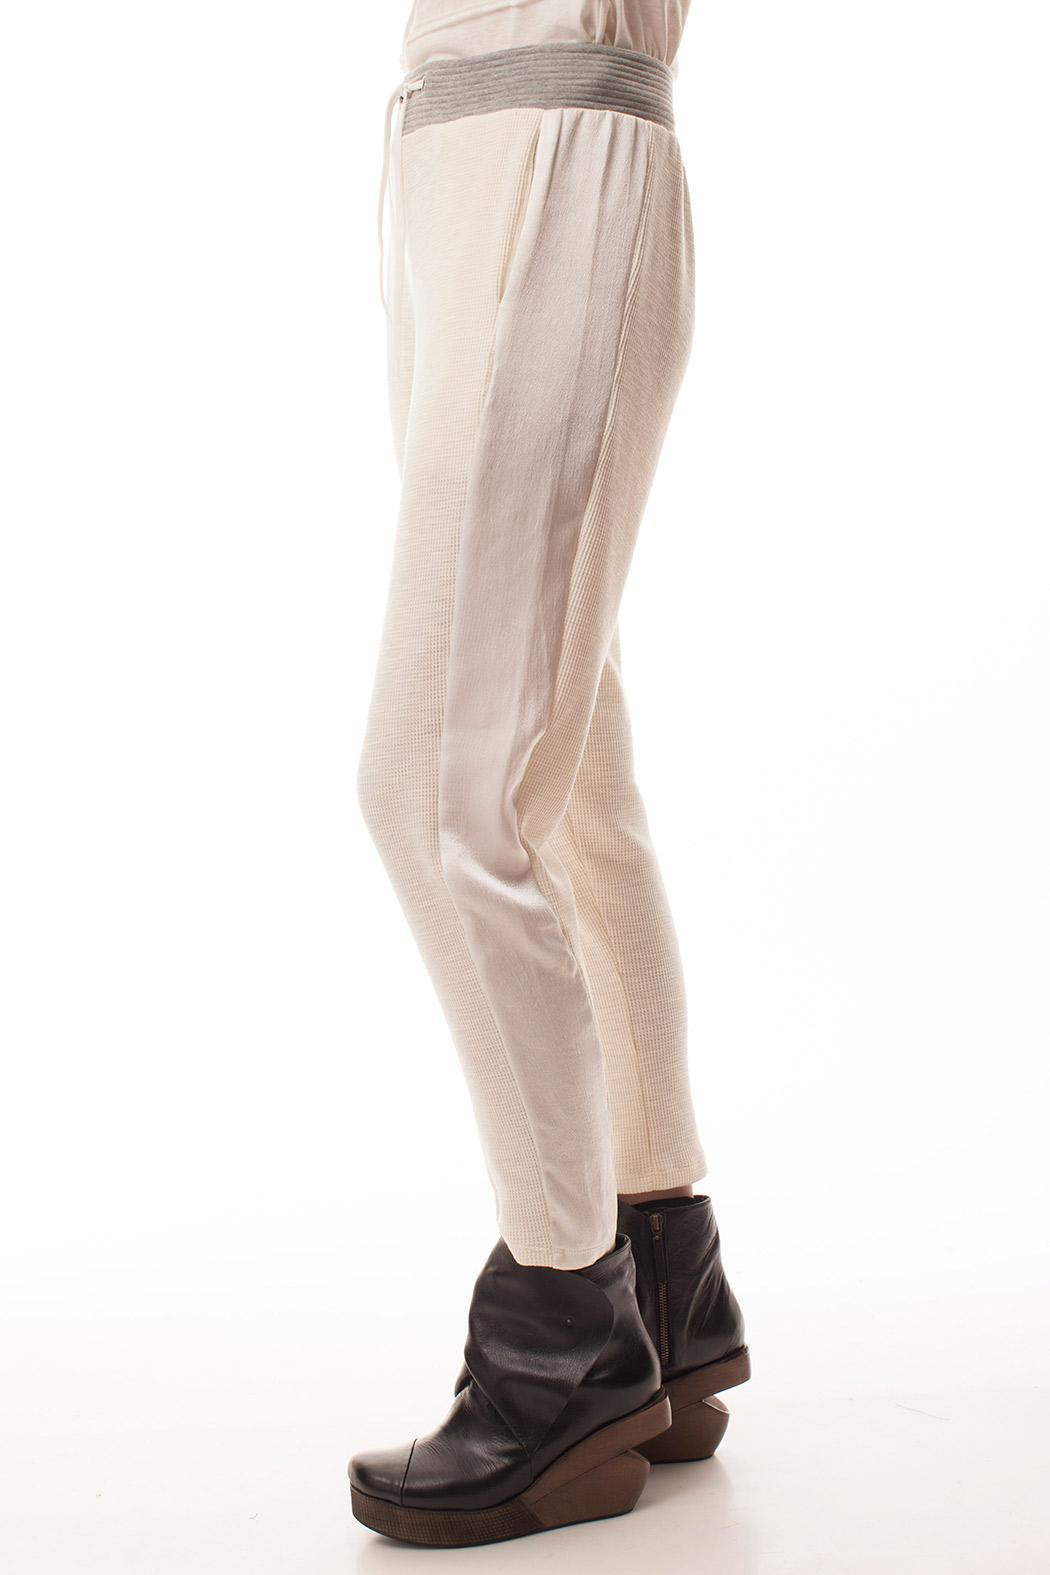 coragroppo Dara Slim Cropped Pants - Side Cropped Image